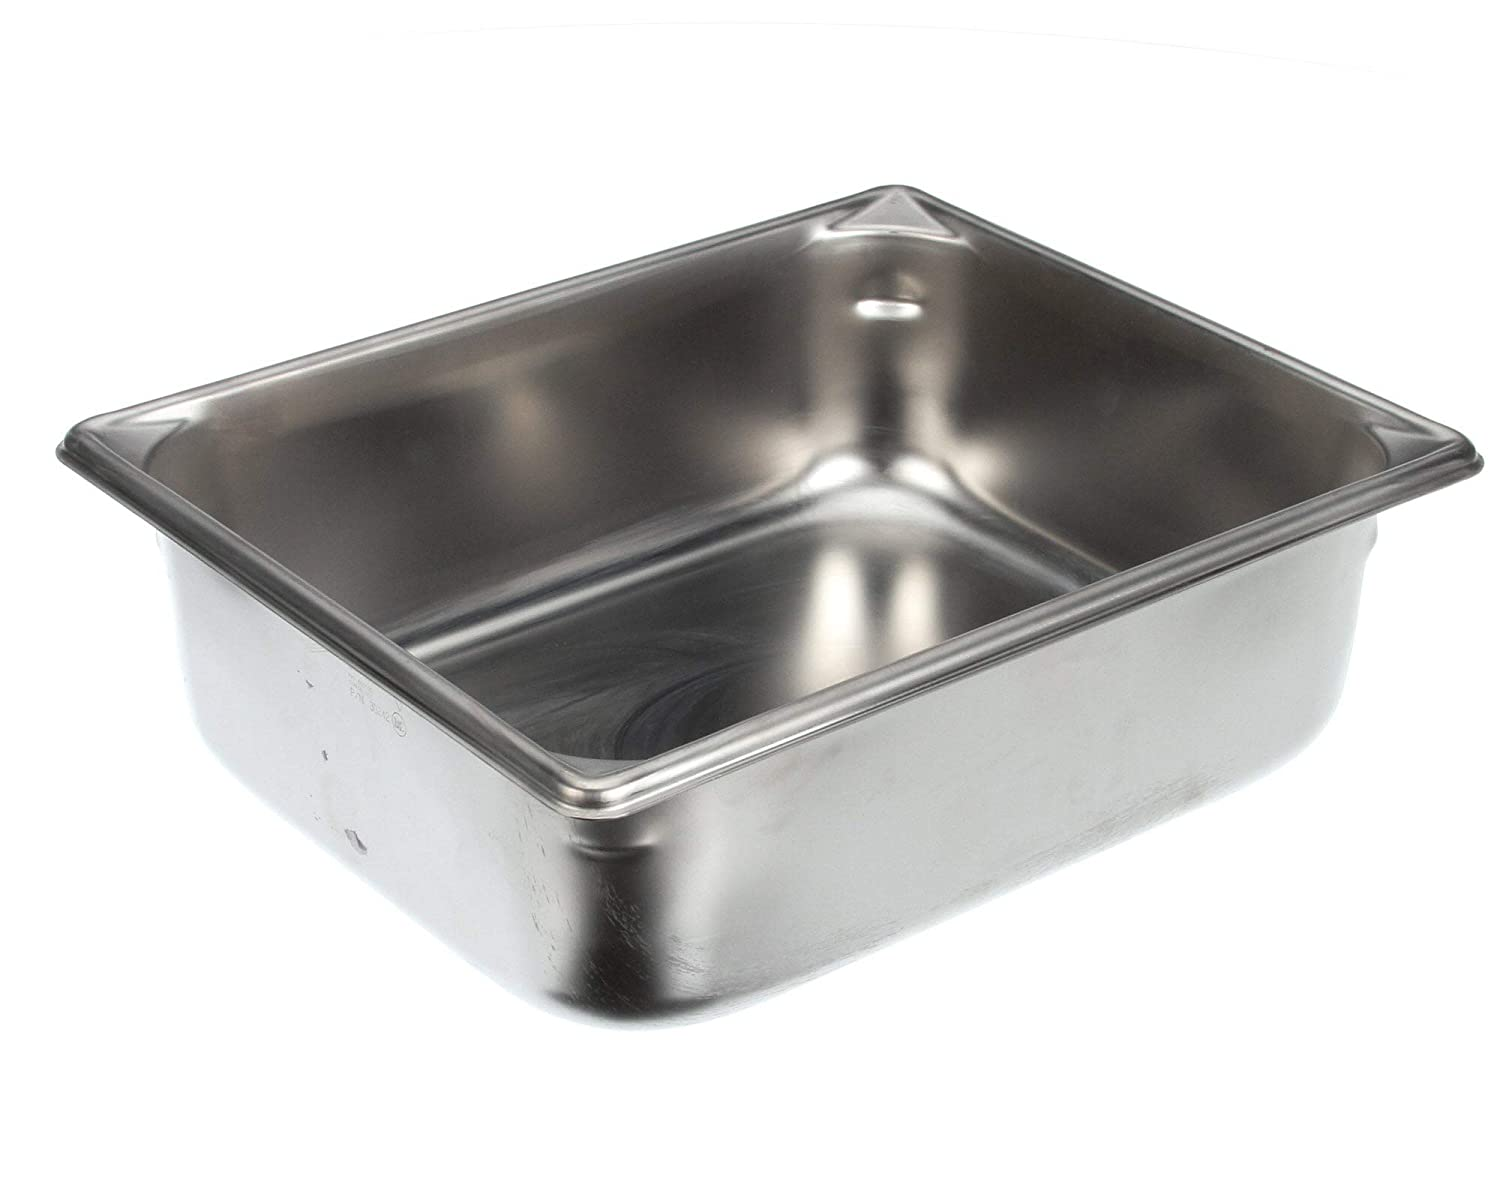 Merrychef 32Z4028 Cool Down Tray